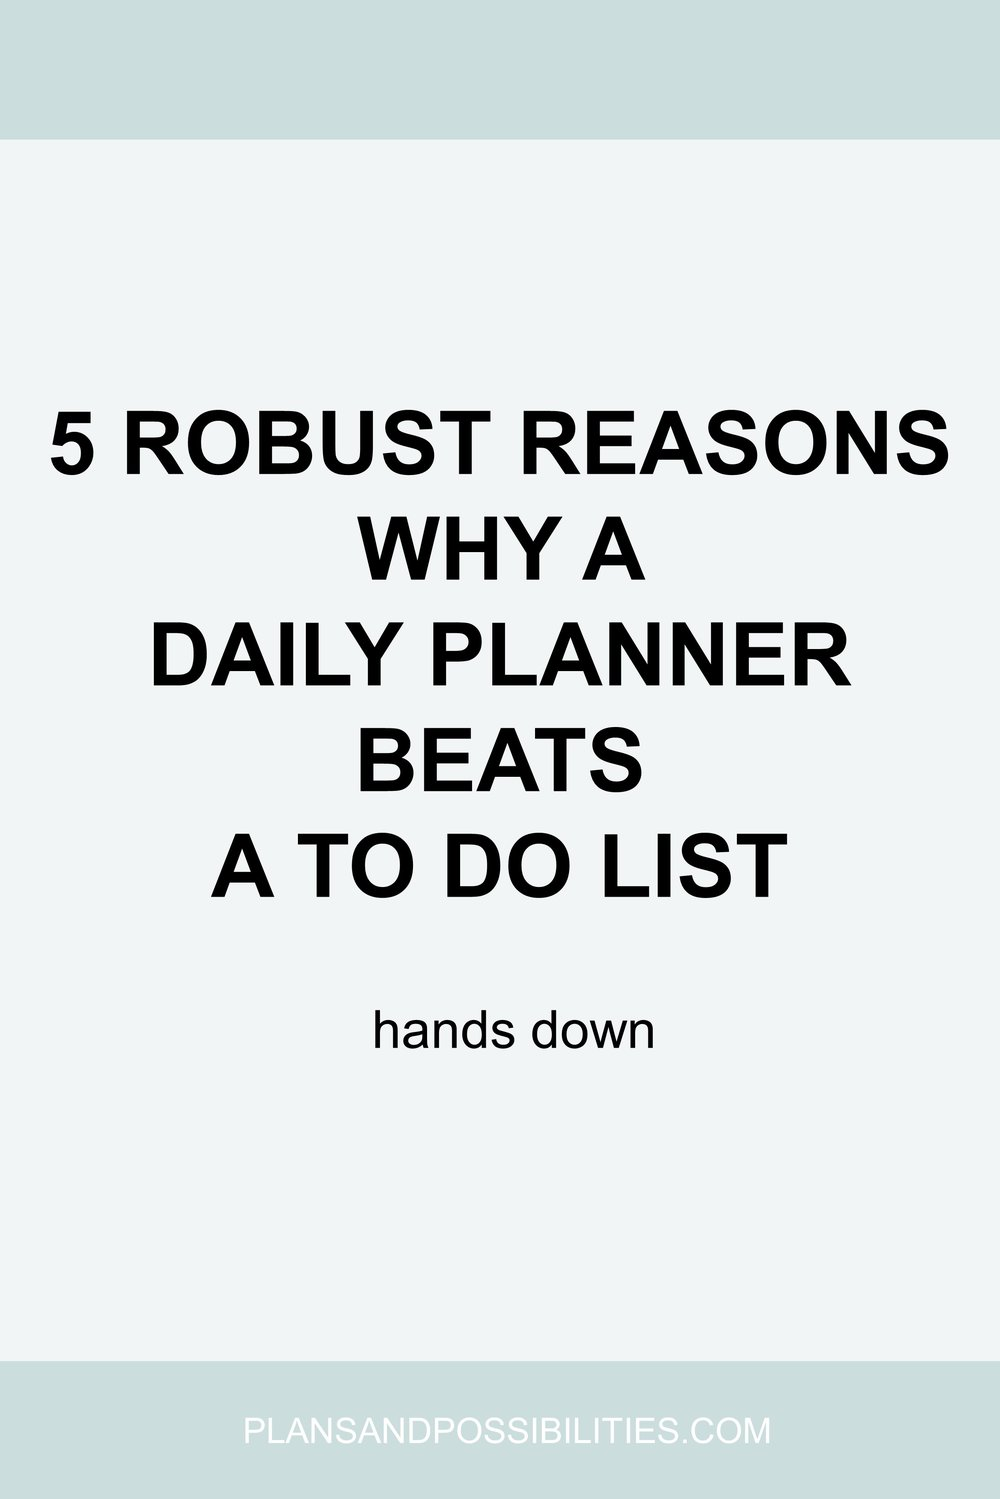 5 Robust Reasons Why A Daily Planner Beats A To Do List.jpg